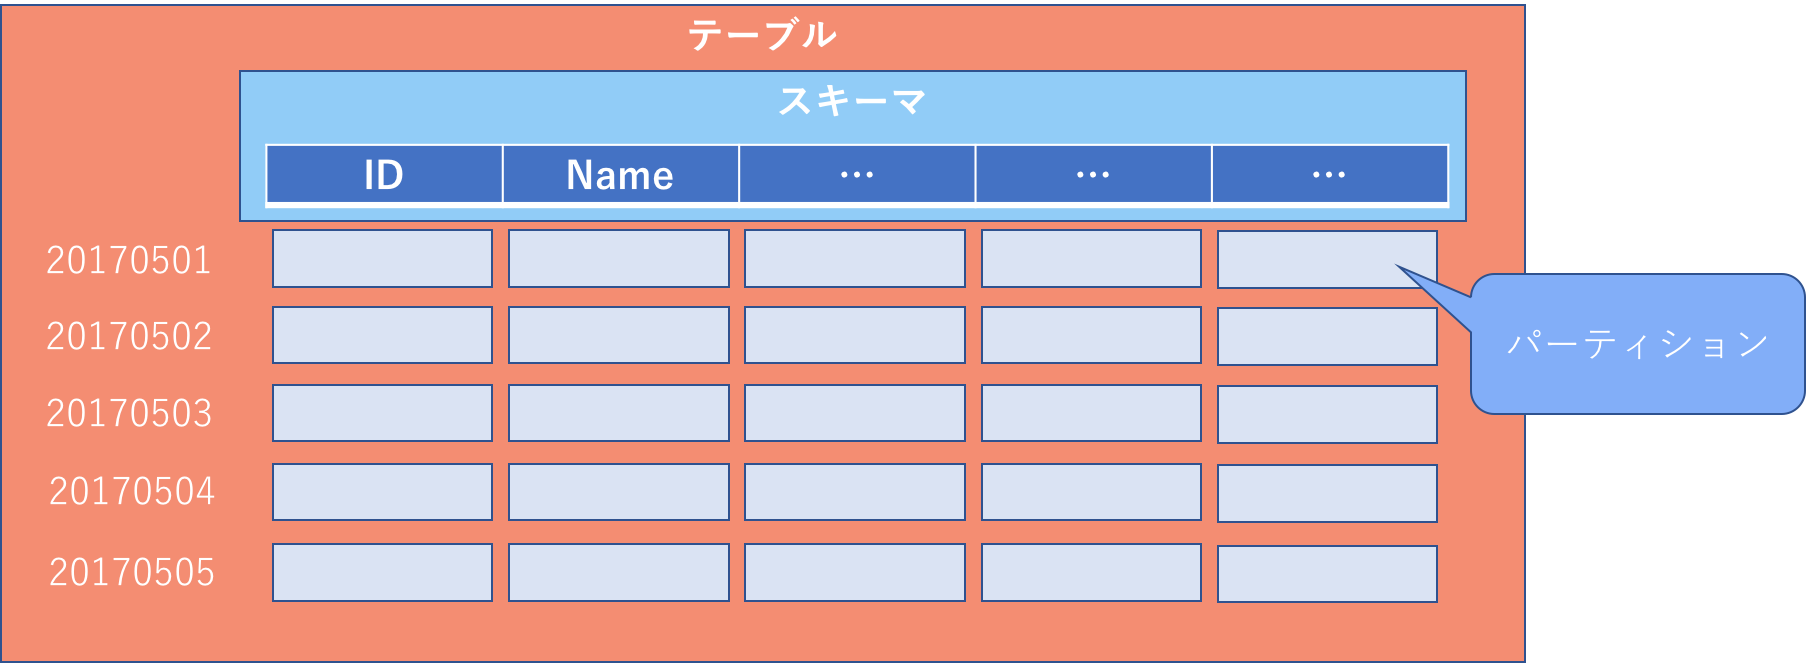 table_structure.png